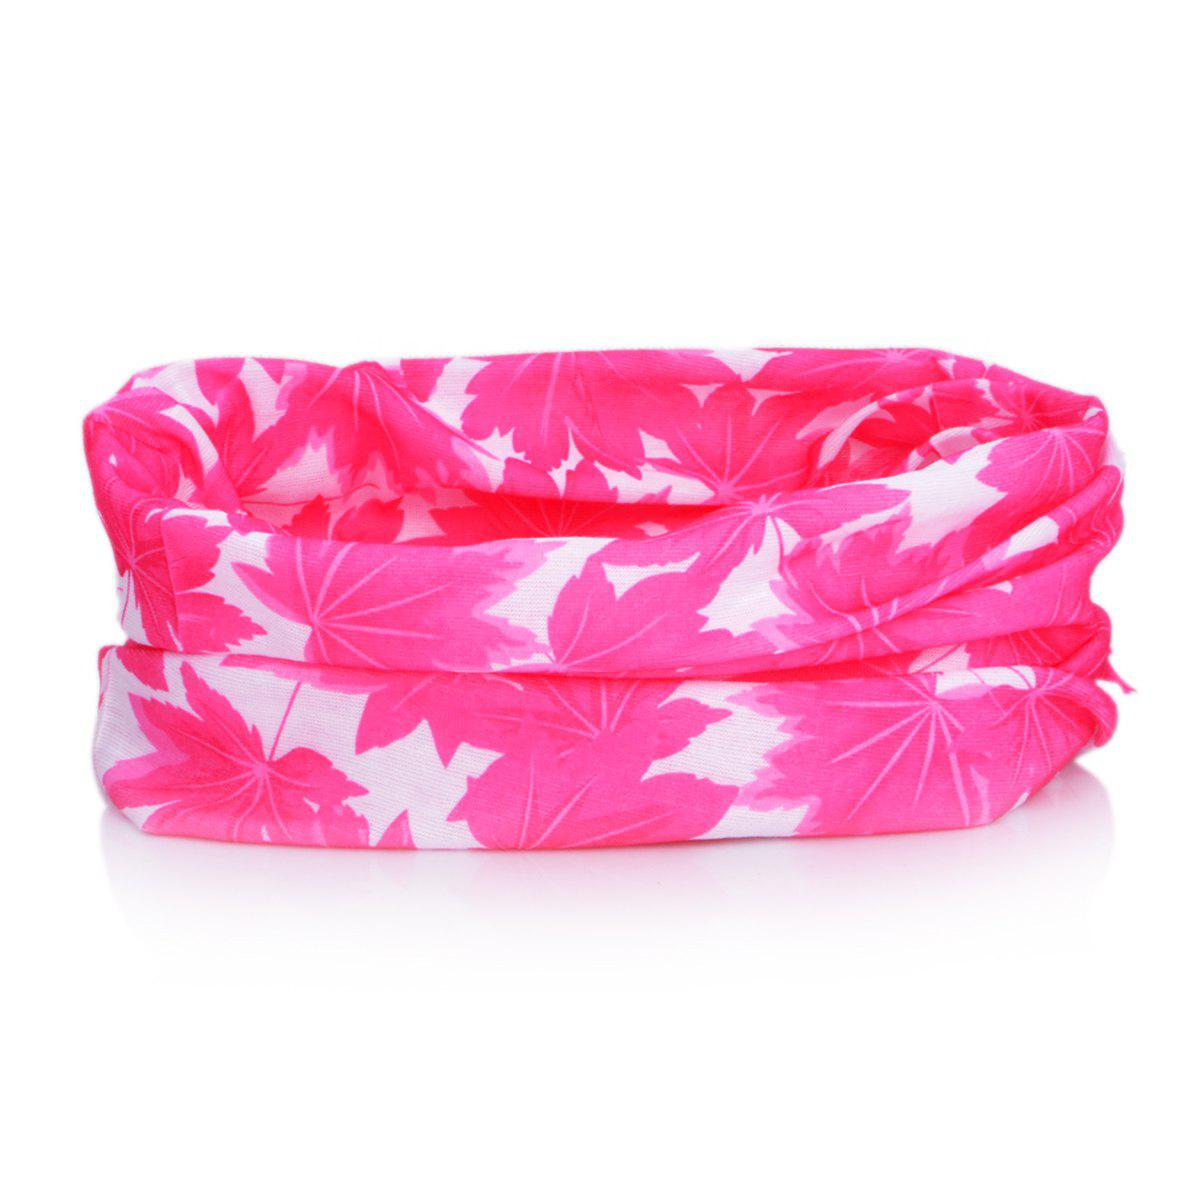 XMS - 17 Cycling Headscarf with Maple Leaves Pattern and Multifunction - 49 x 24cm - RED